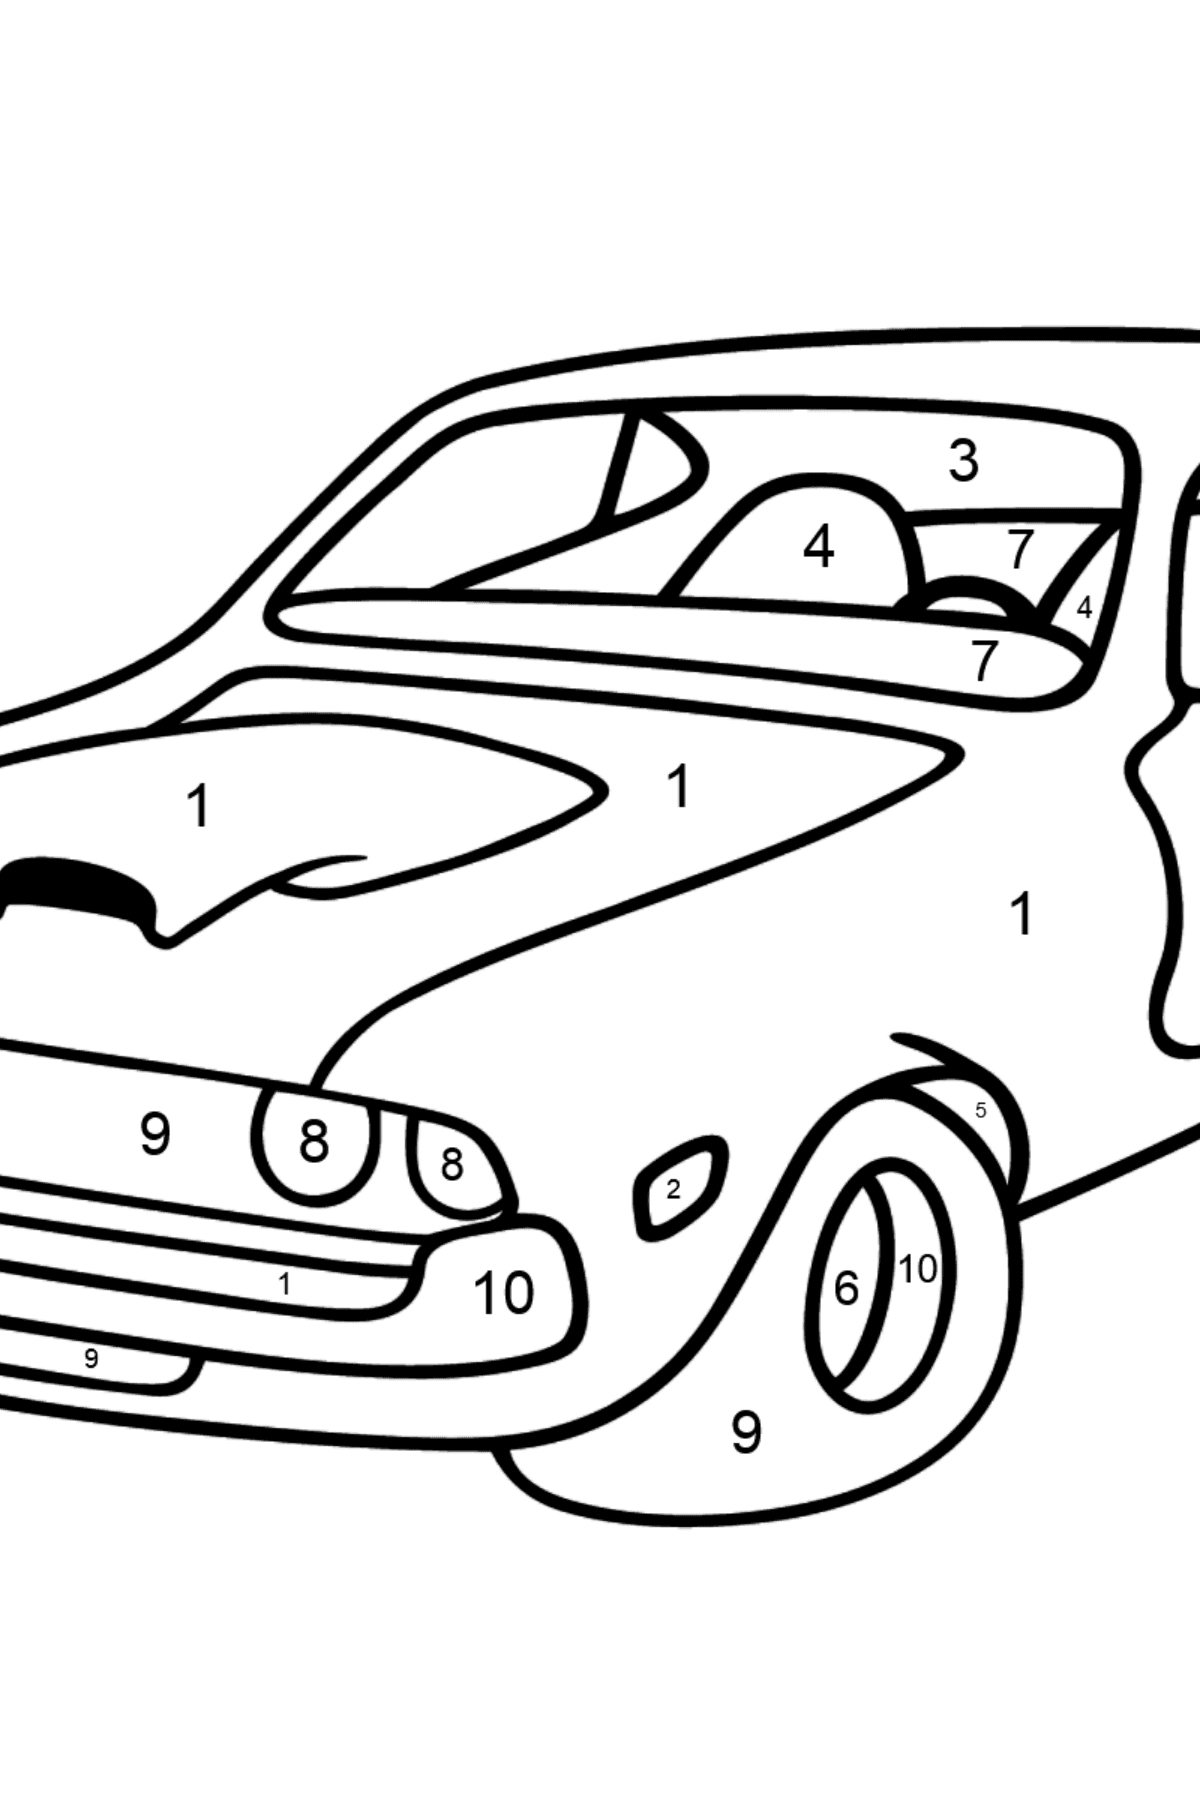 Chevrolet-Chevy Sports Car coloring page - Coloring by Numbers for Kids